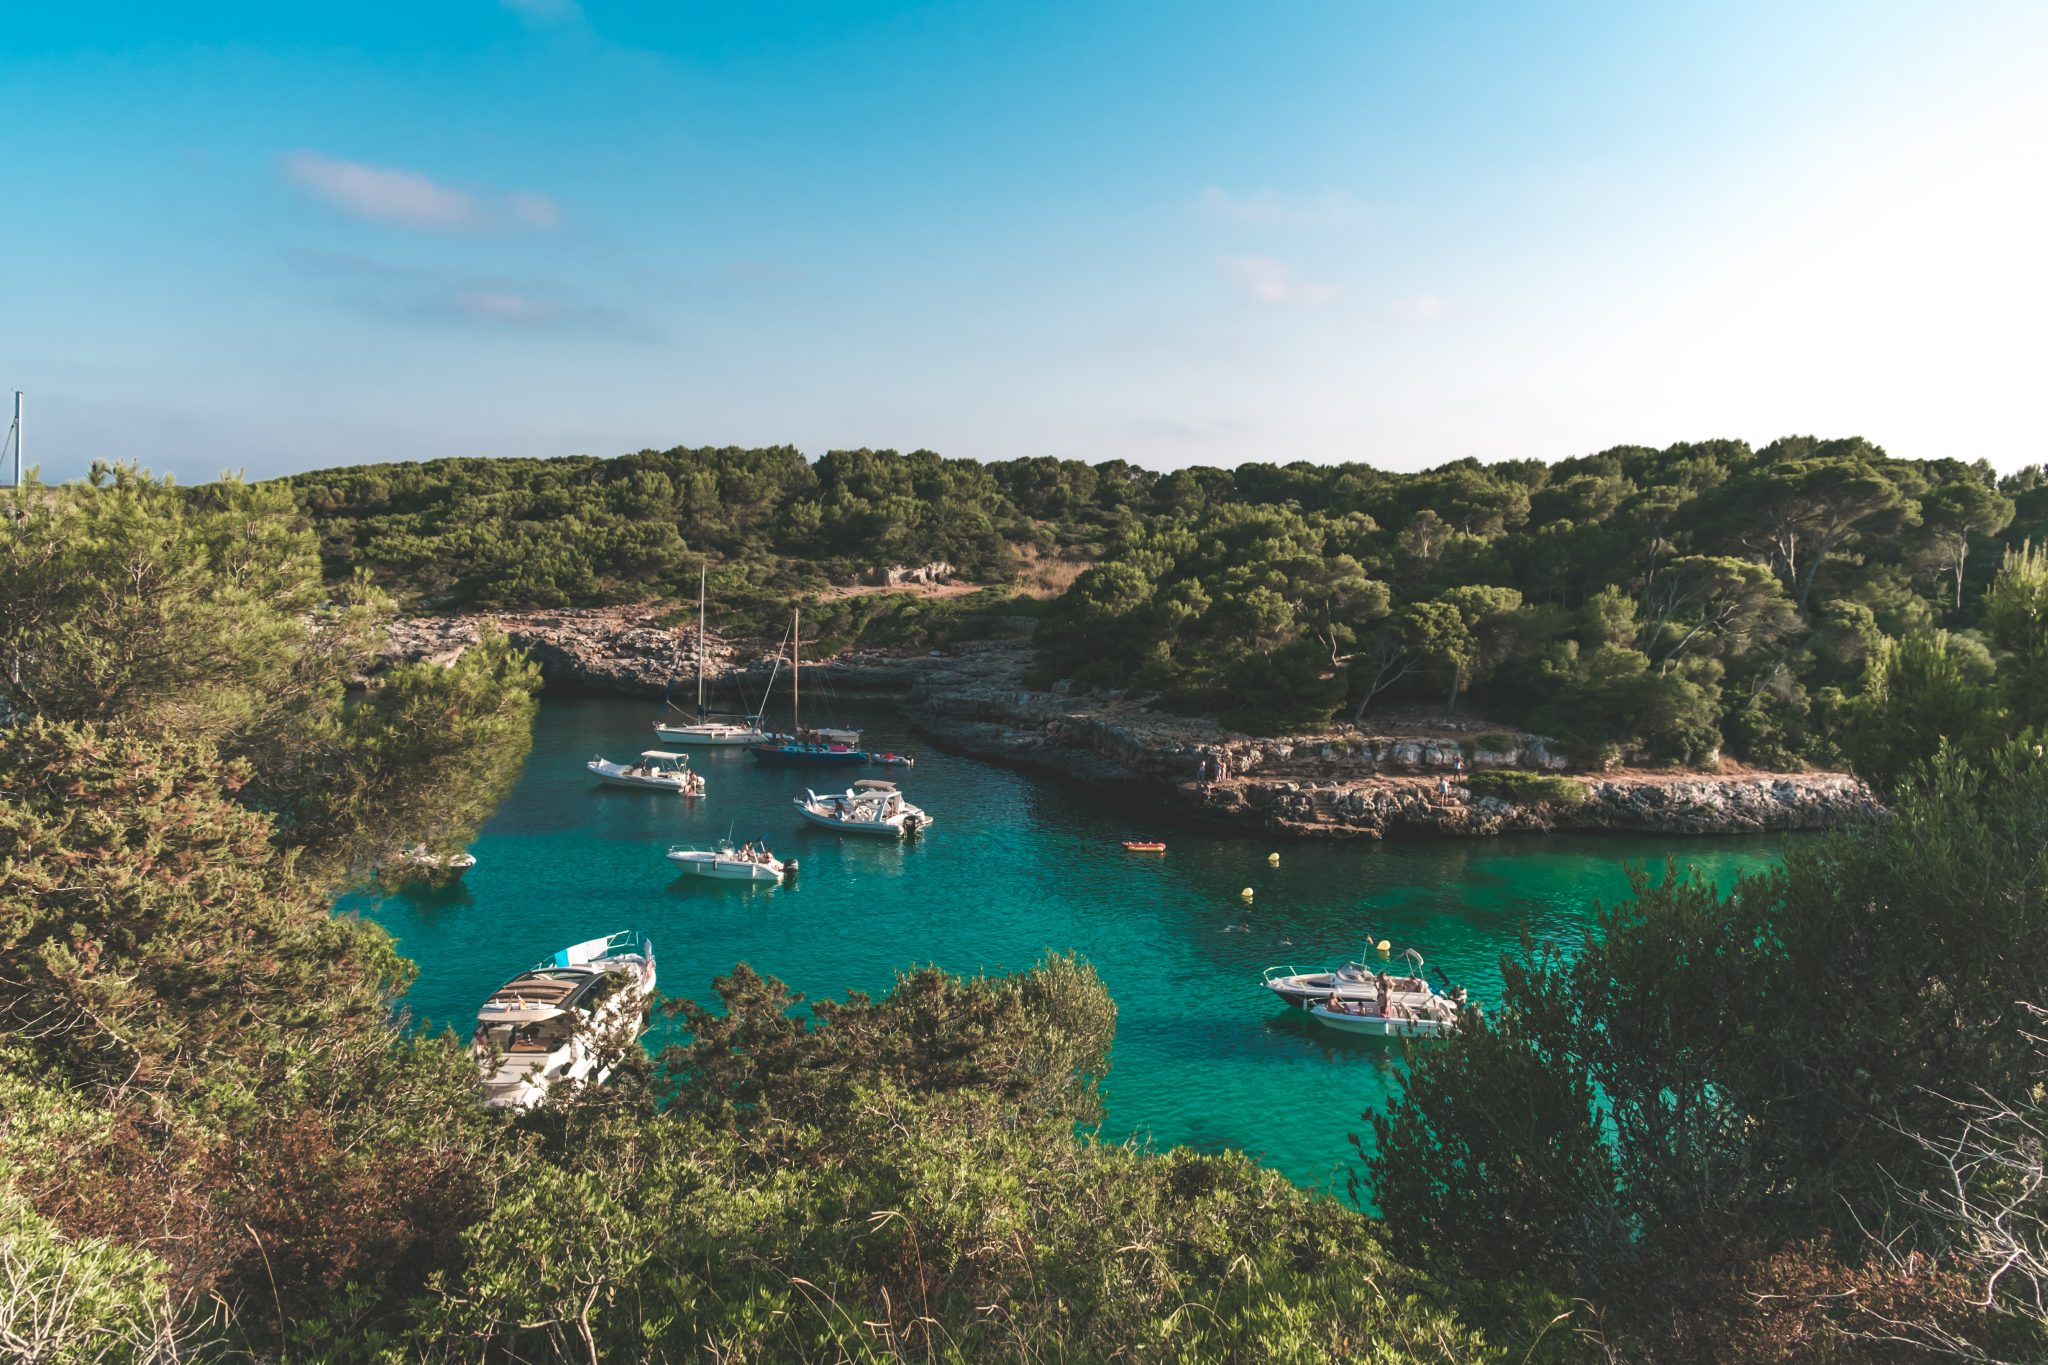 Boats in a blue lagoon photo by Jo Kassis